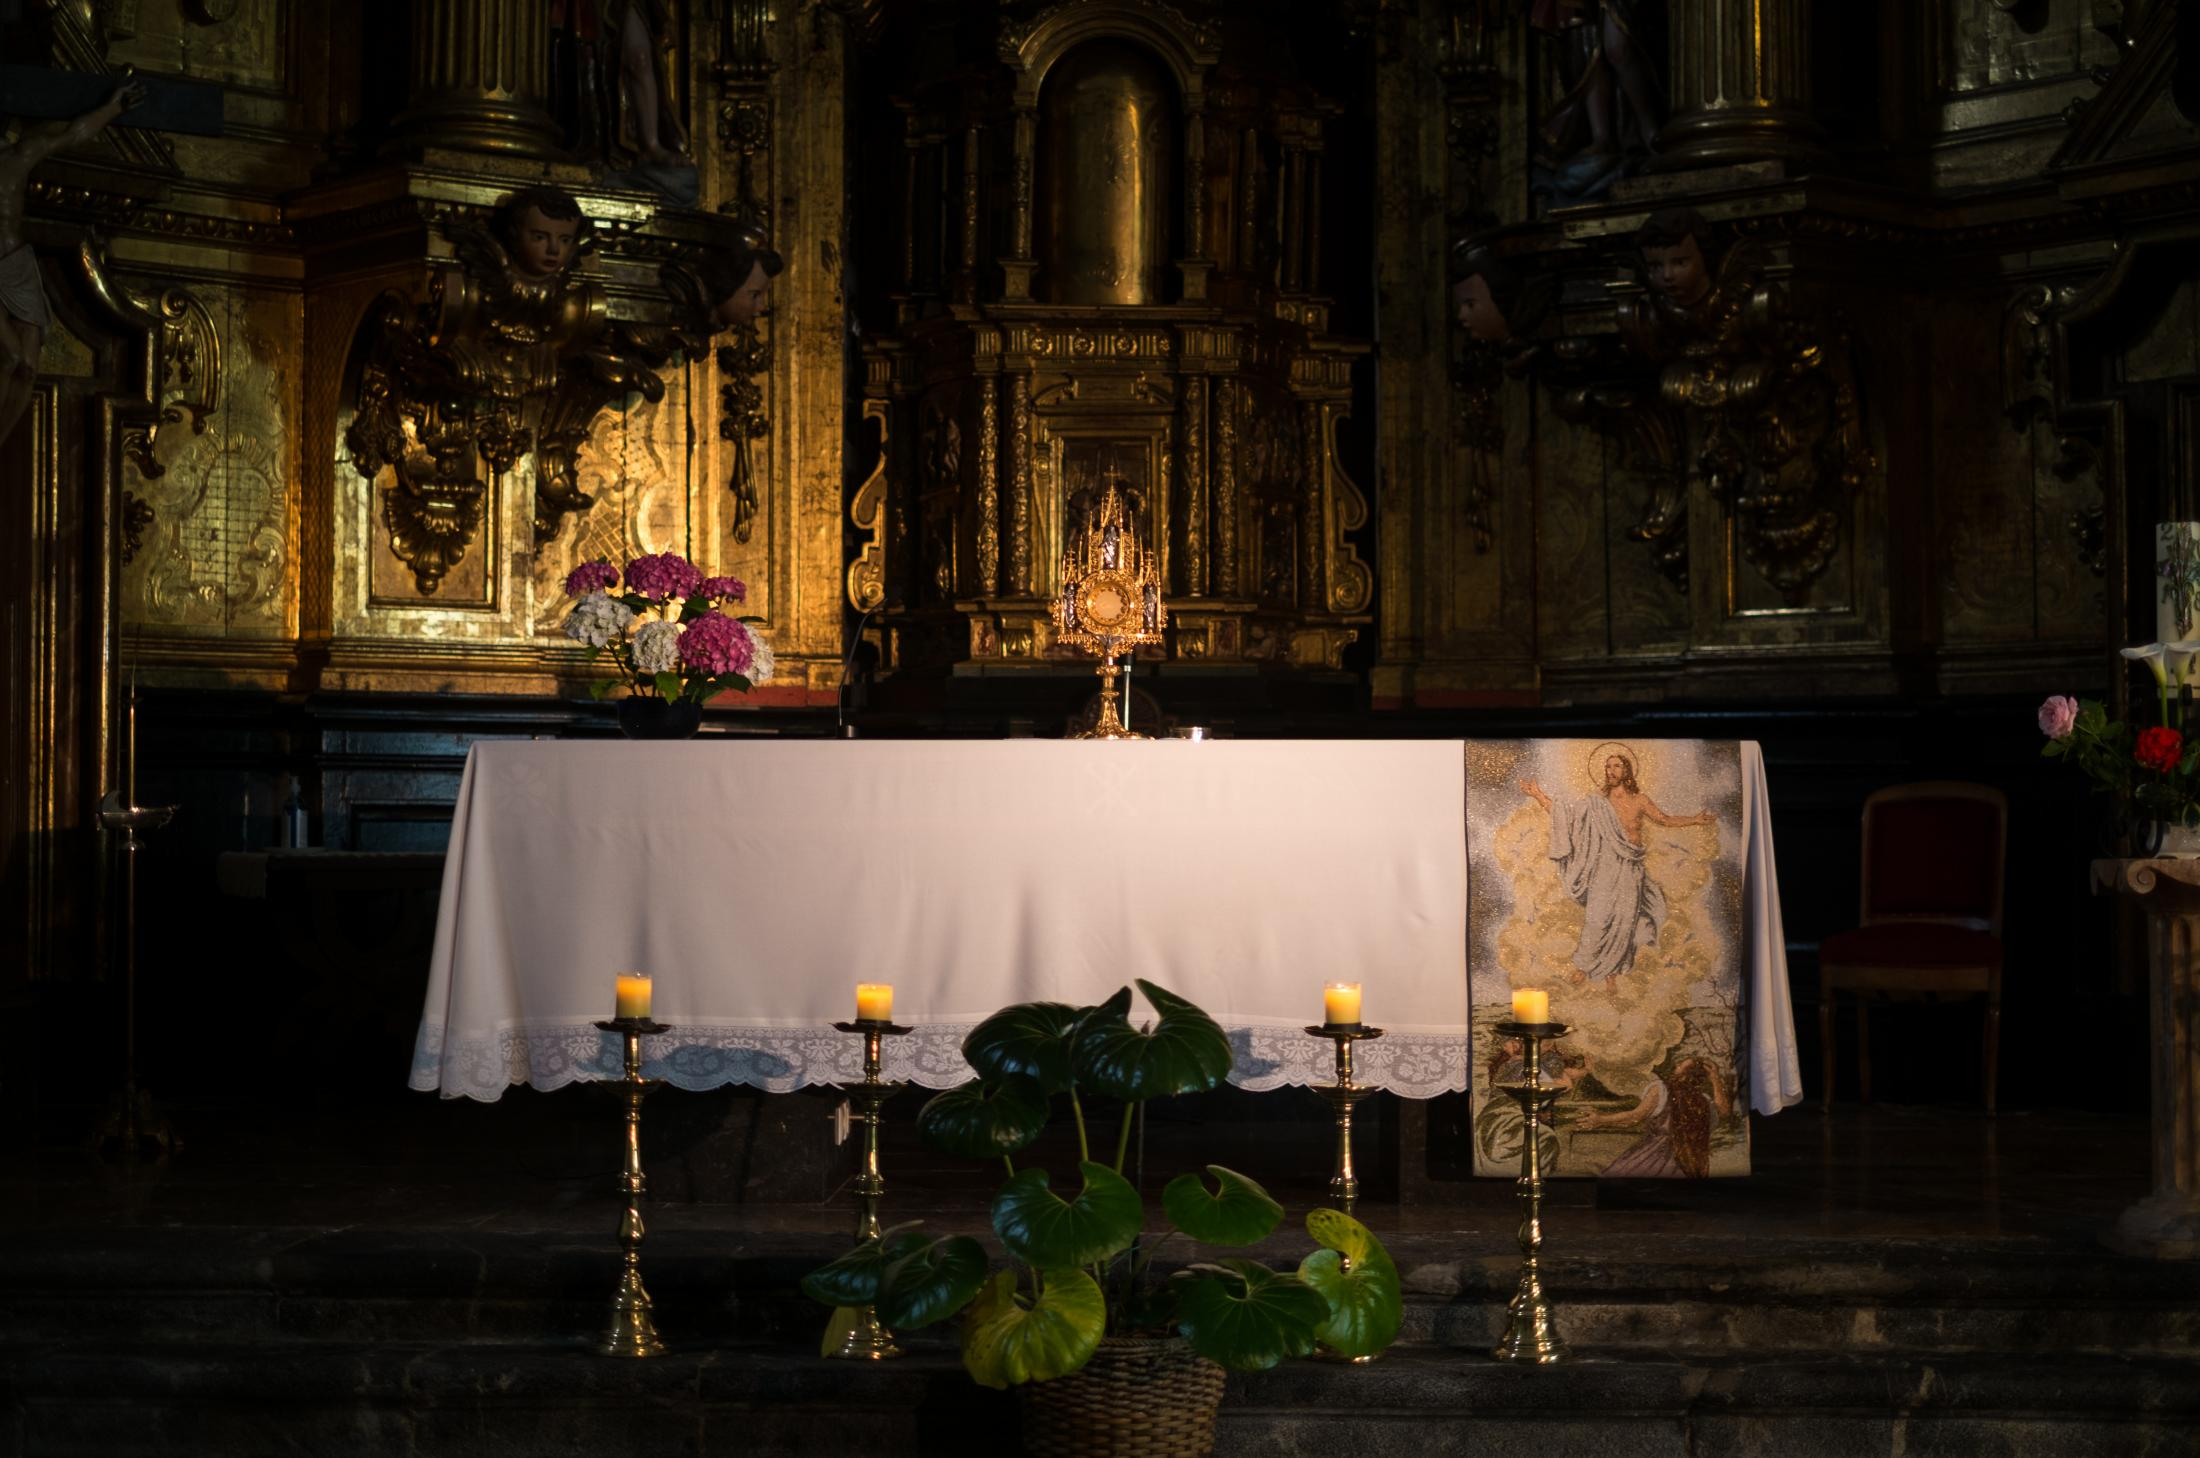 Altar of the church in monastery Santa Clara.